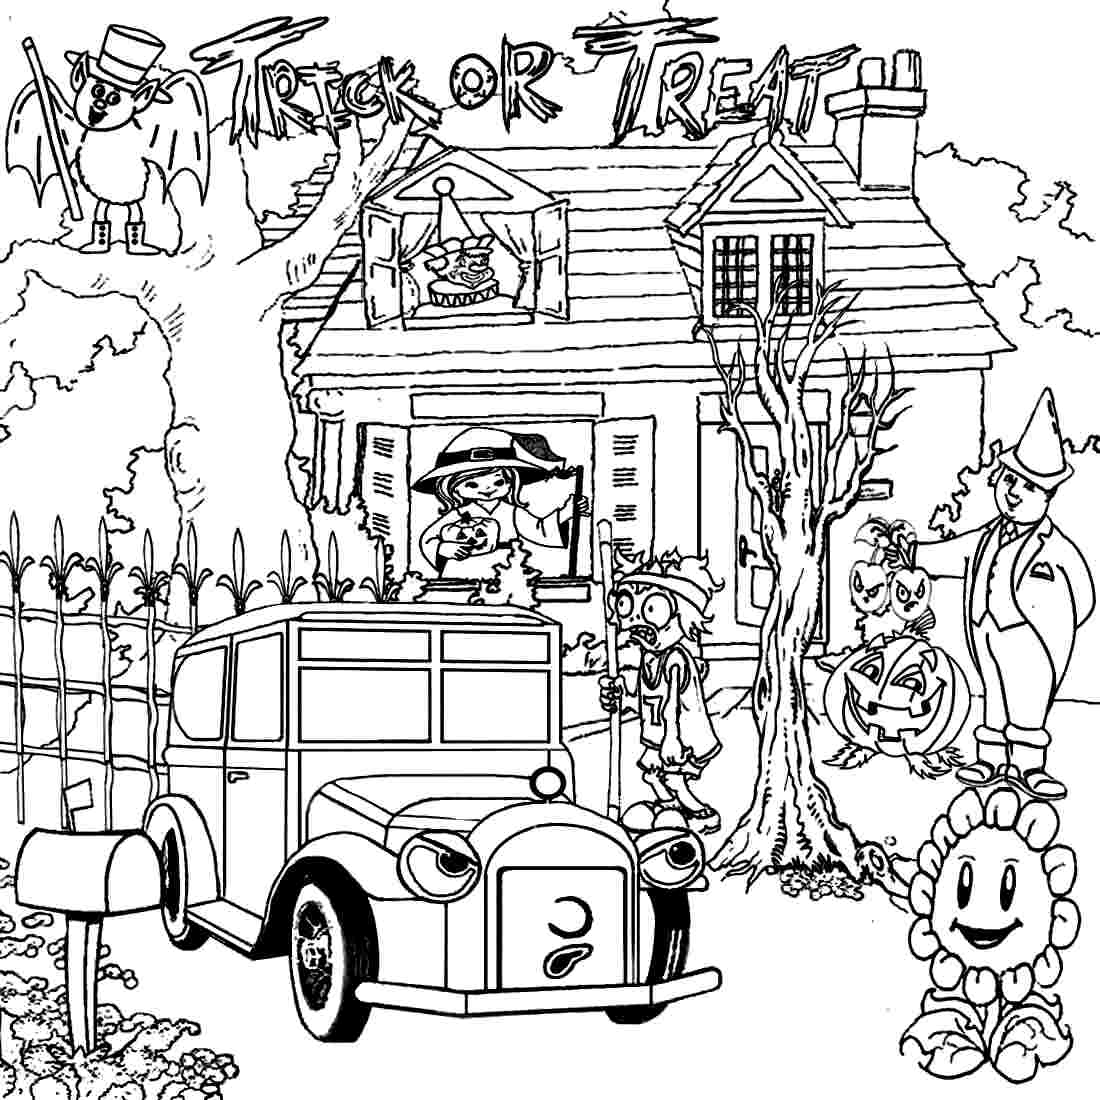 haunted house coloring page halloween big haunted house halloween adult coloring pages haunted coloring house page